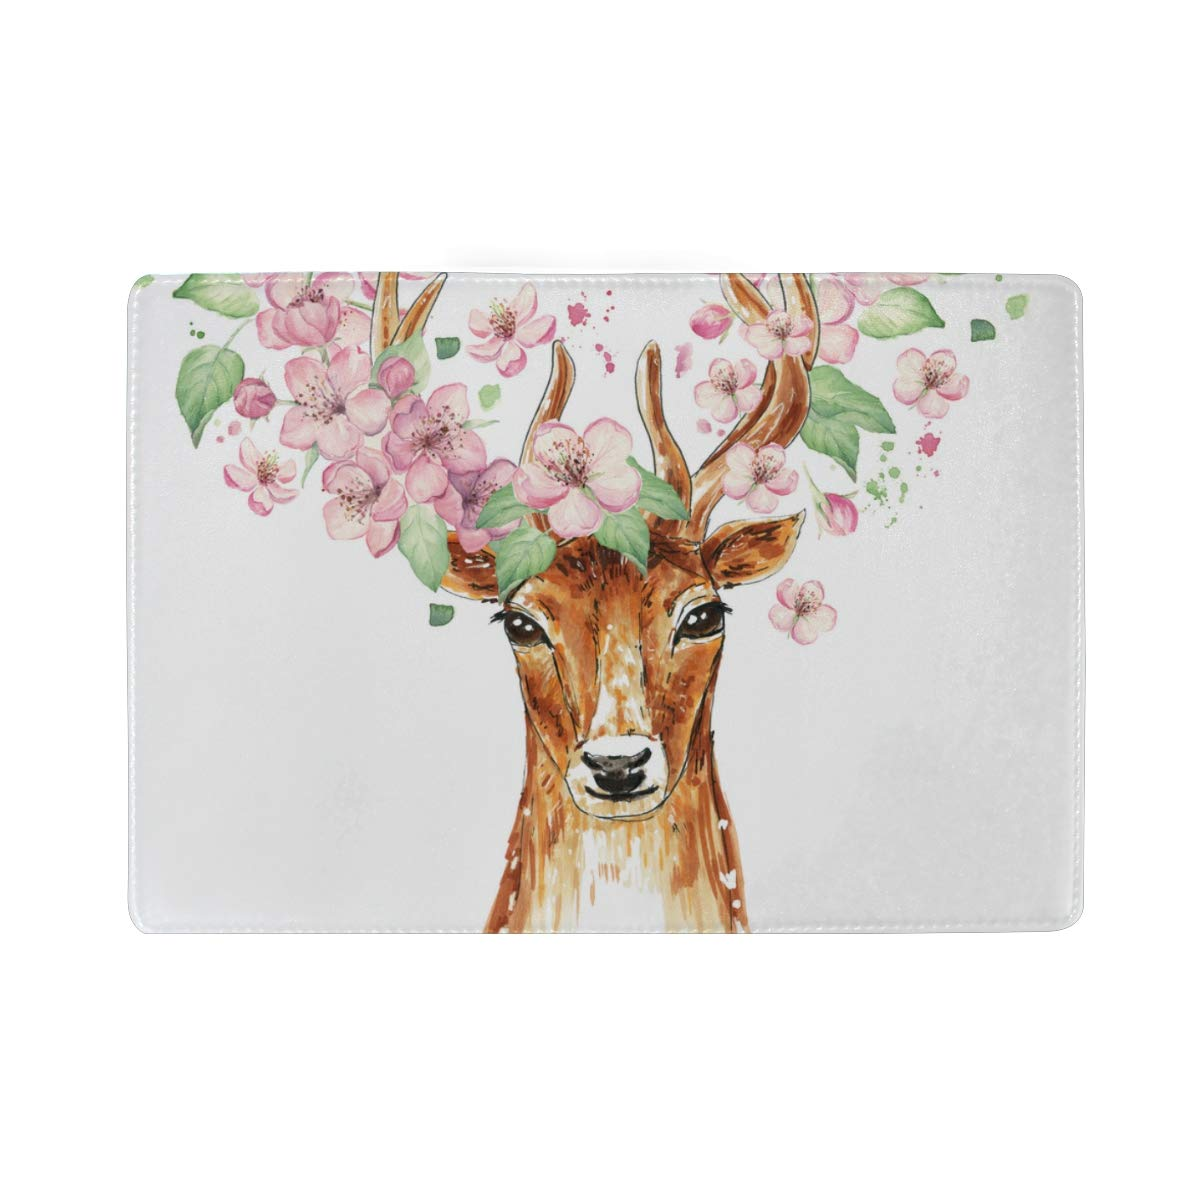 Lonely Bucks Stout Antlers Blocking Print Passport Holder Cover Case Travel Luggage Passport Wallet Card Holder Made With Leather For Men Women Kids Family